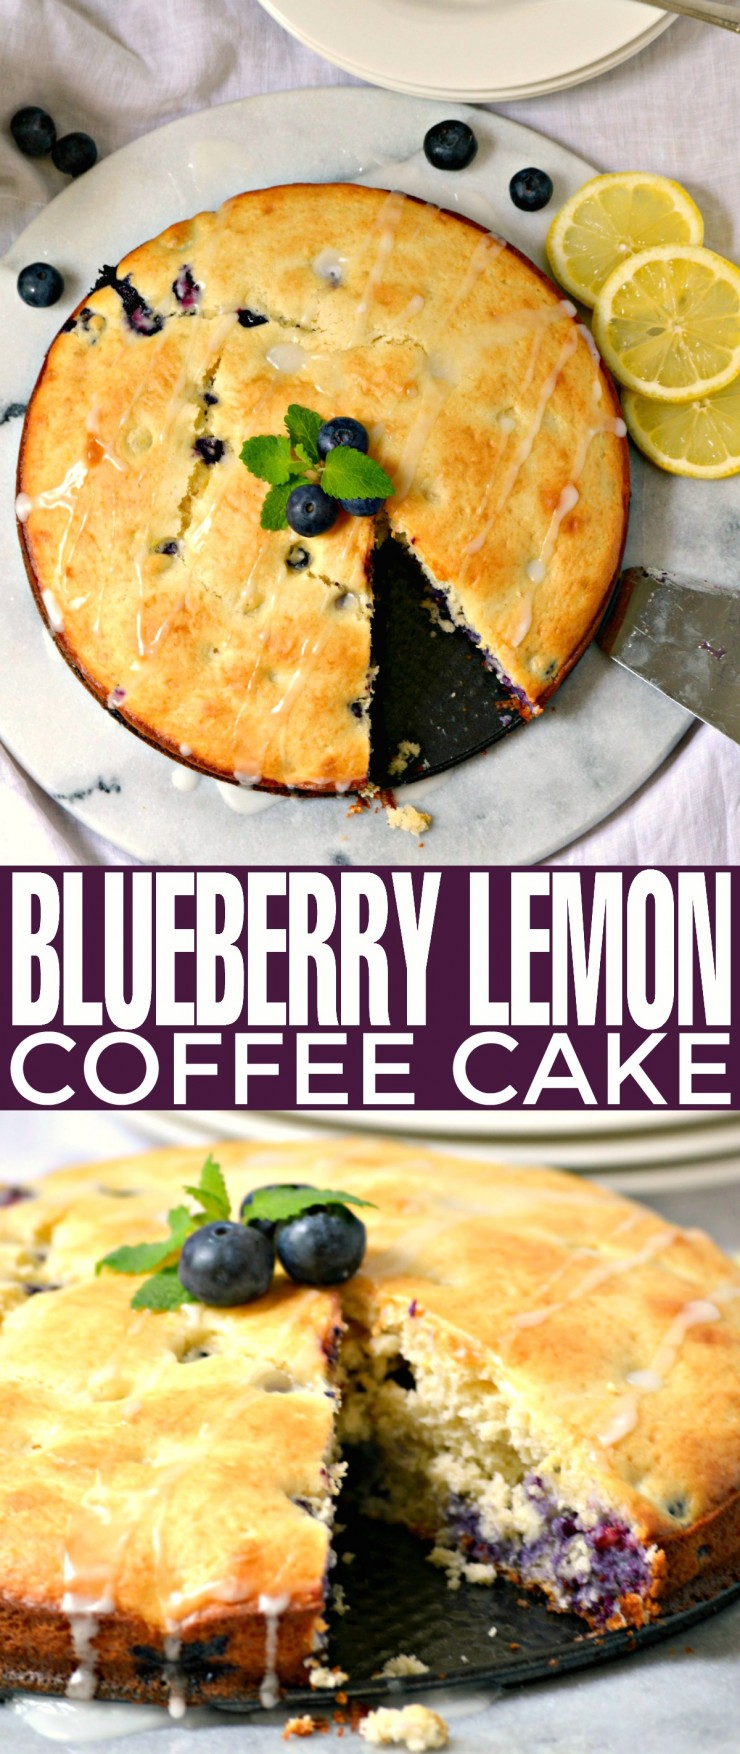 This Blueberry Lemon Coffee Cake recipe is loaded with flavour - it's a dessert everyone just loves to sit down and eat with a mug of hot coffee!